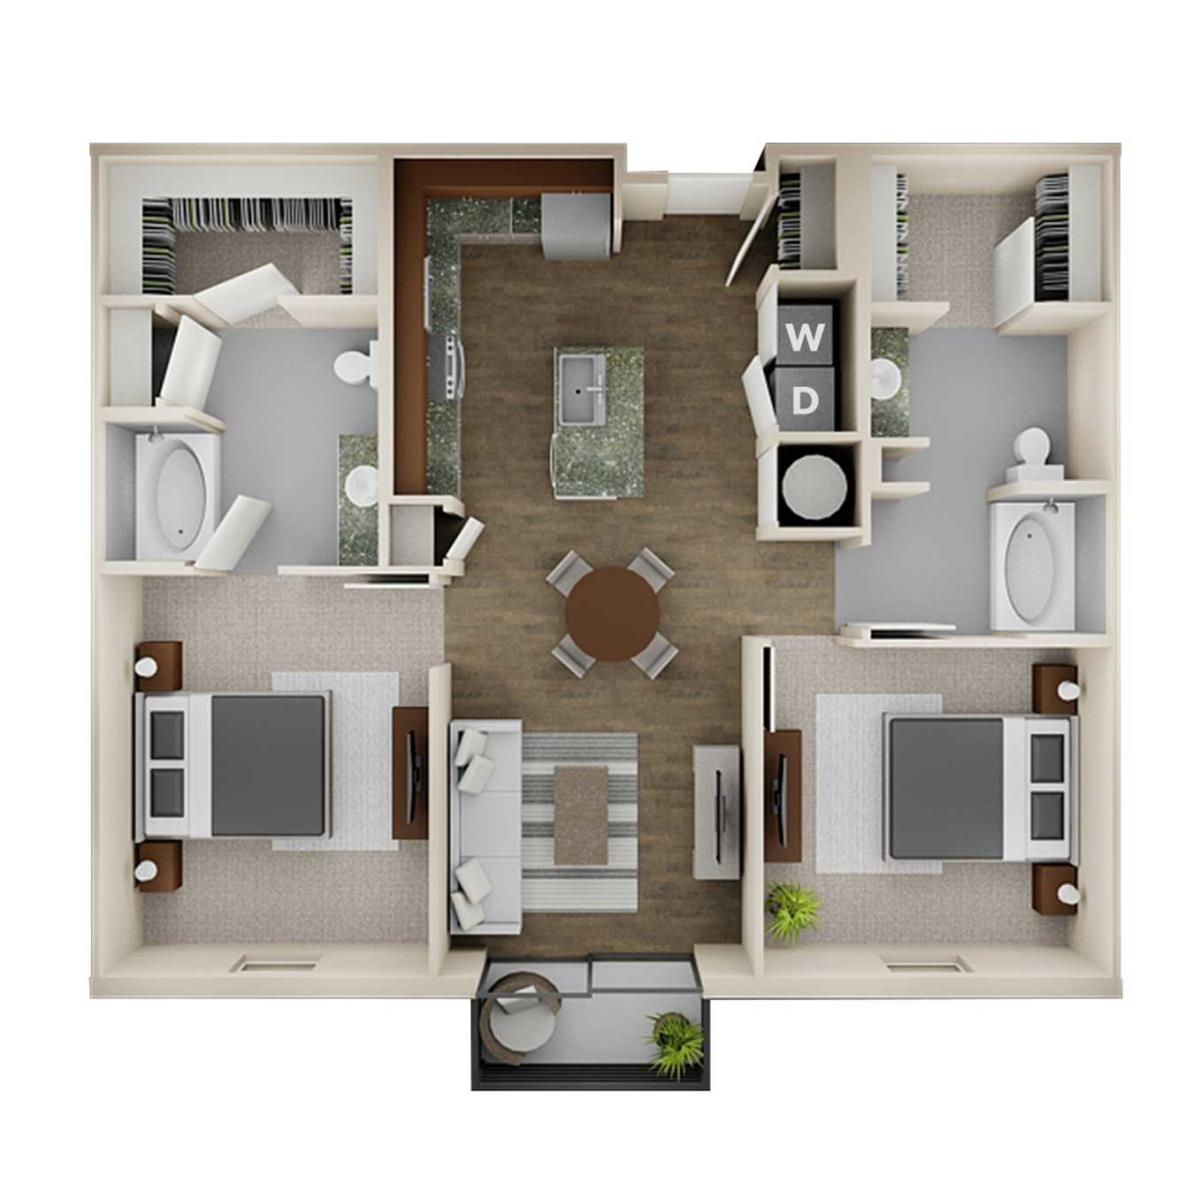 1,099 sq. ft. 2AA floor plan